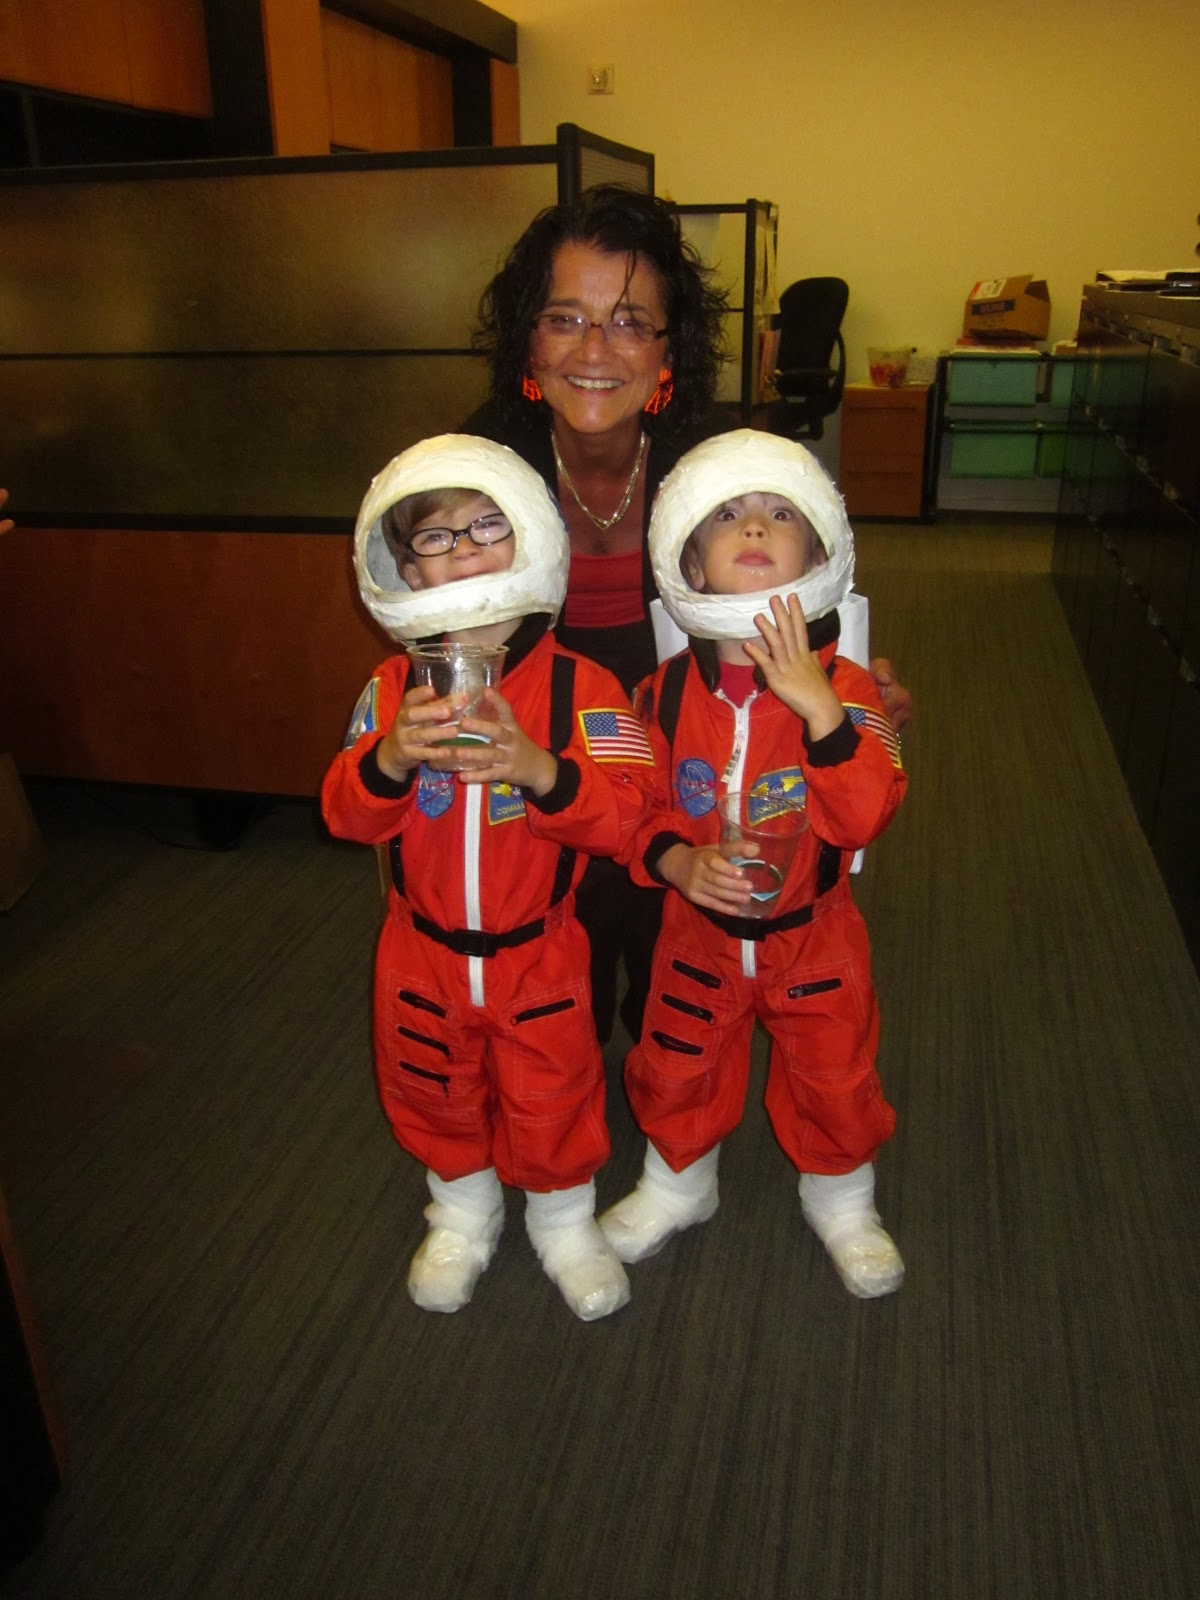 whispers and shouts how to make space shuttle and astronaut costumes. Black Bedroom Furniture Sets. Home Design Ideas